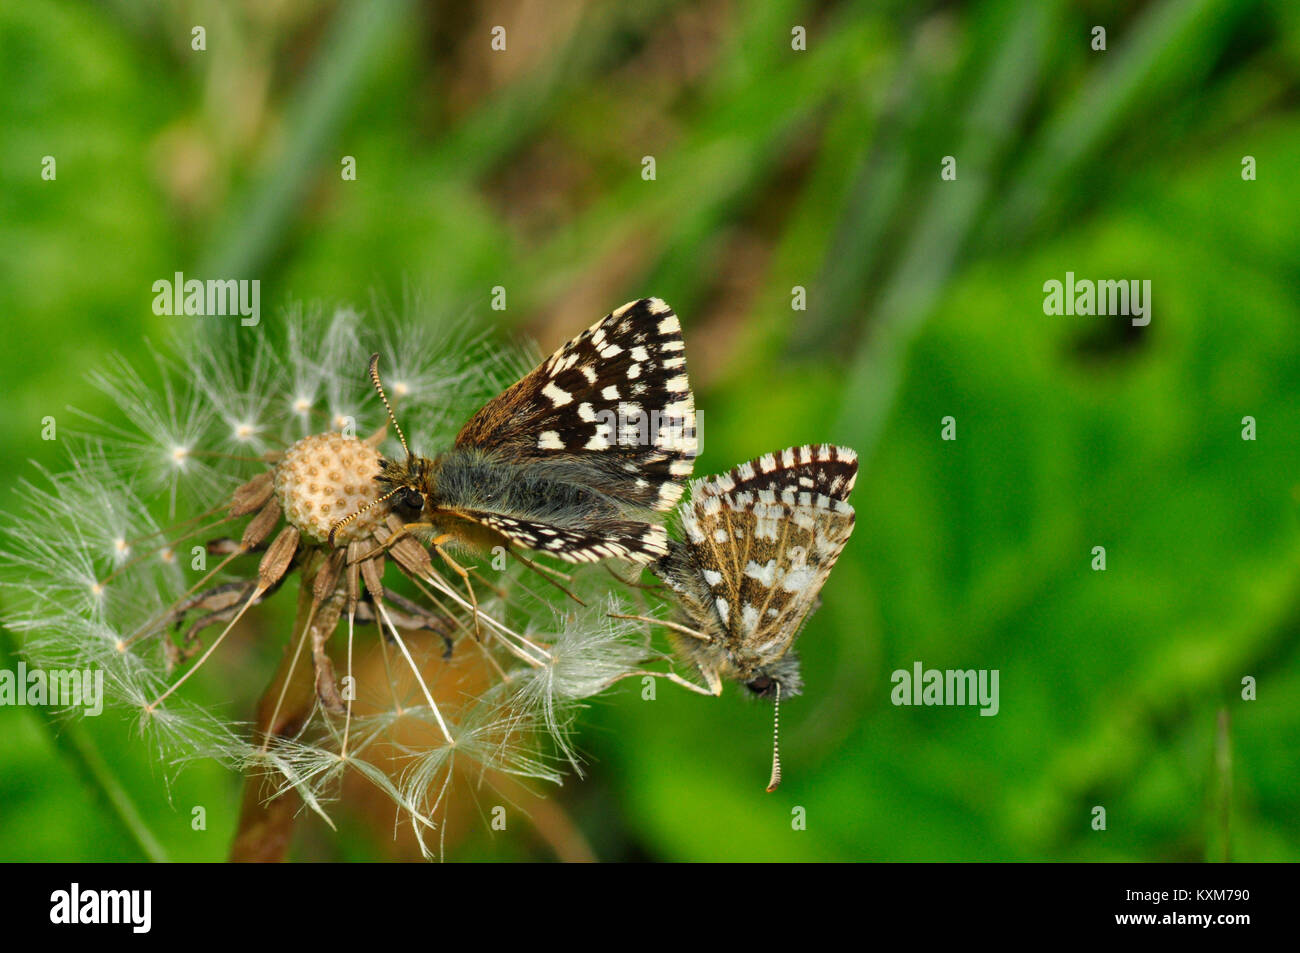 Grizzled Skipper,'Pyrgus malvae', butterfly found on chalk downland,mating pair on dandylion, Wiltshire,UK - Stock Image